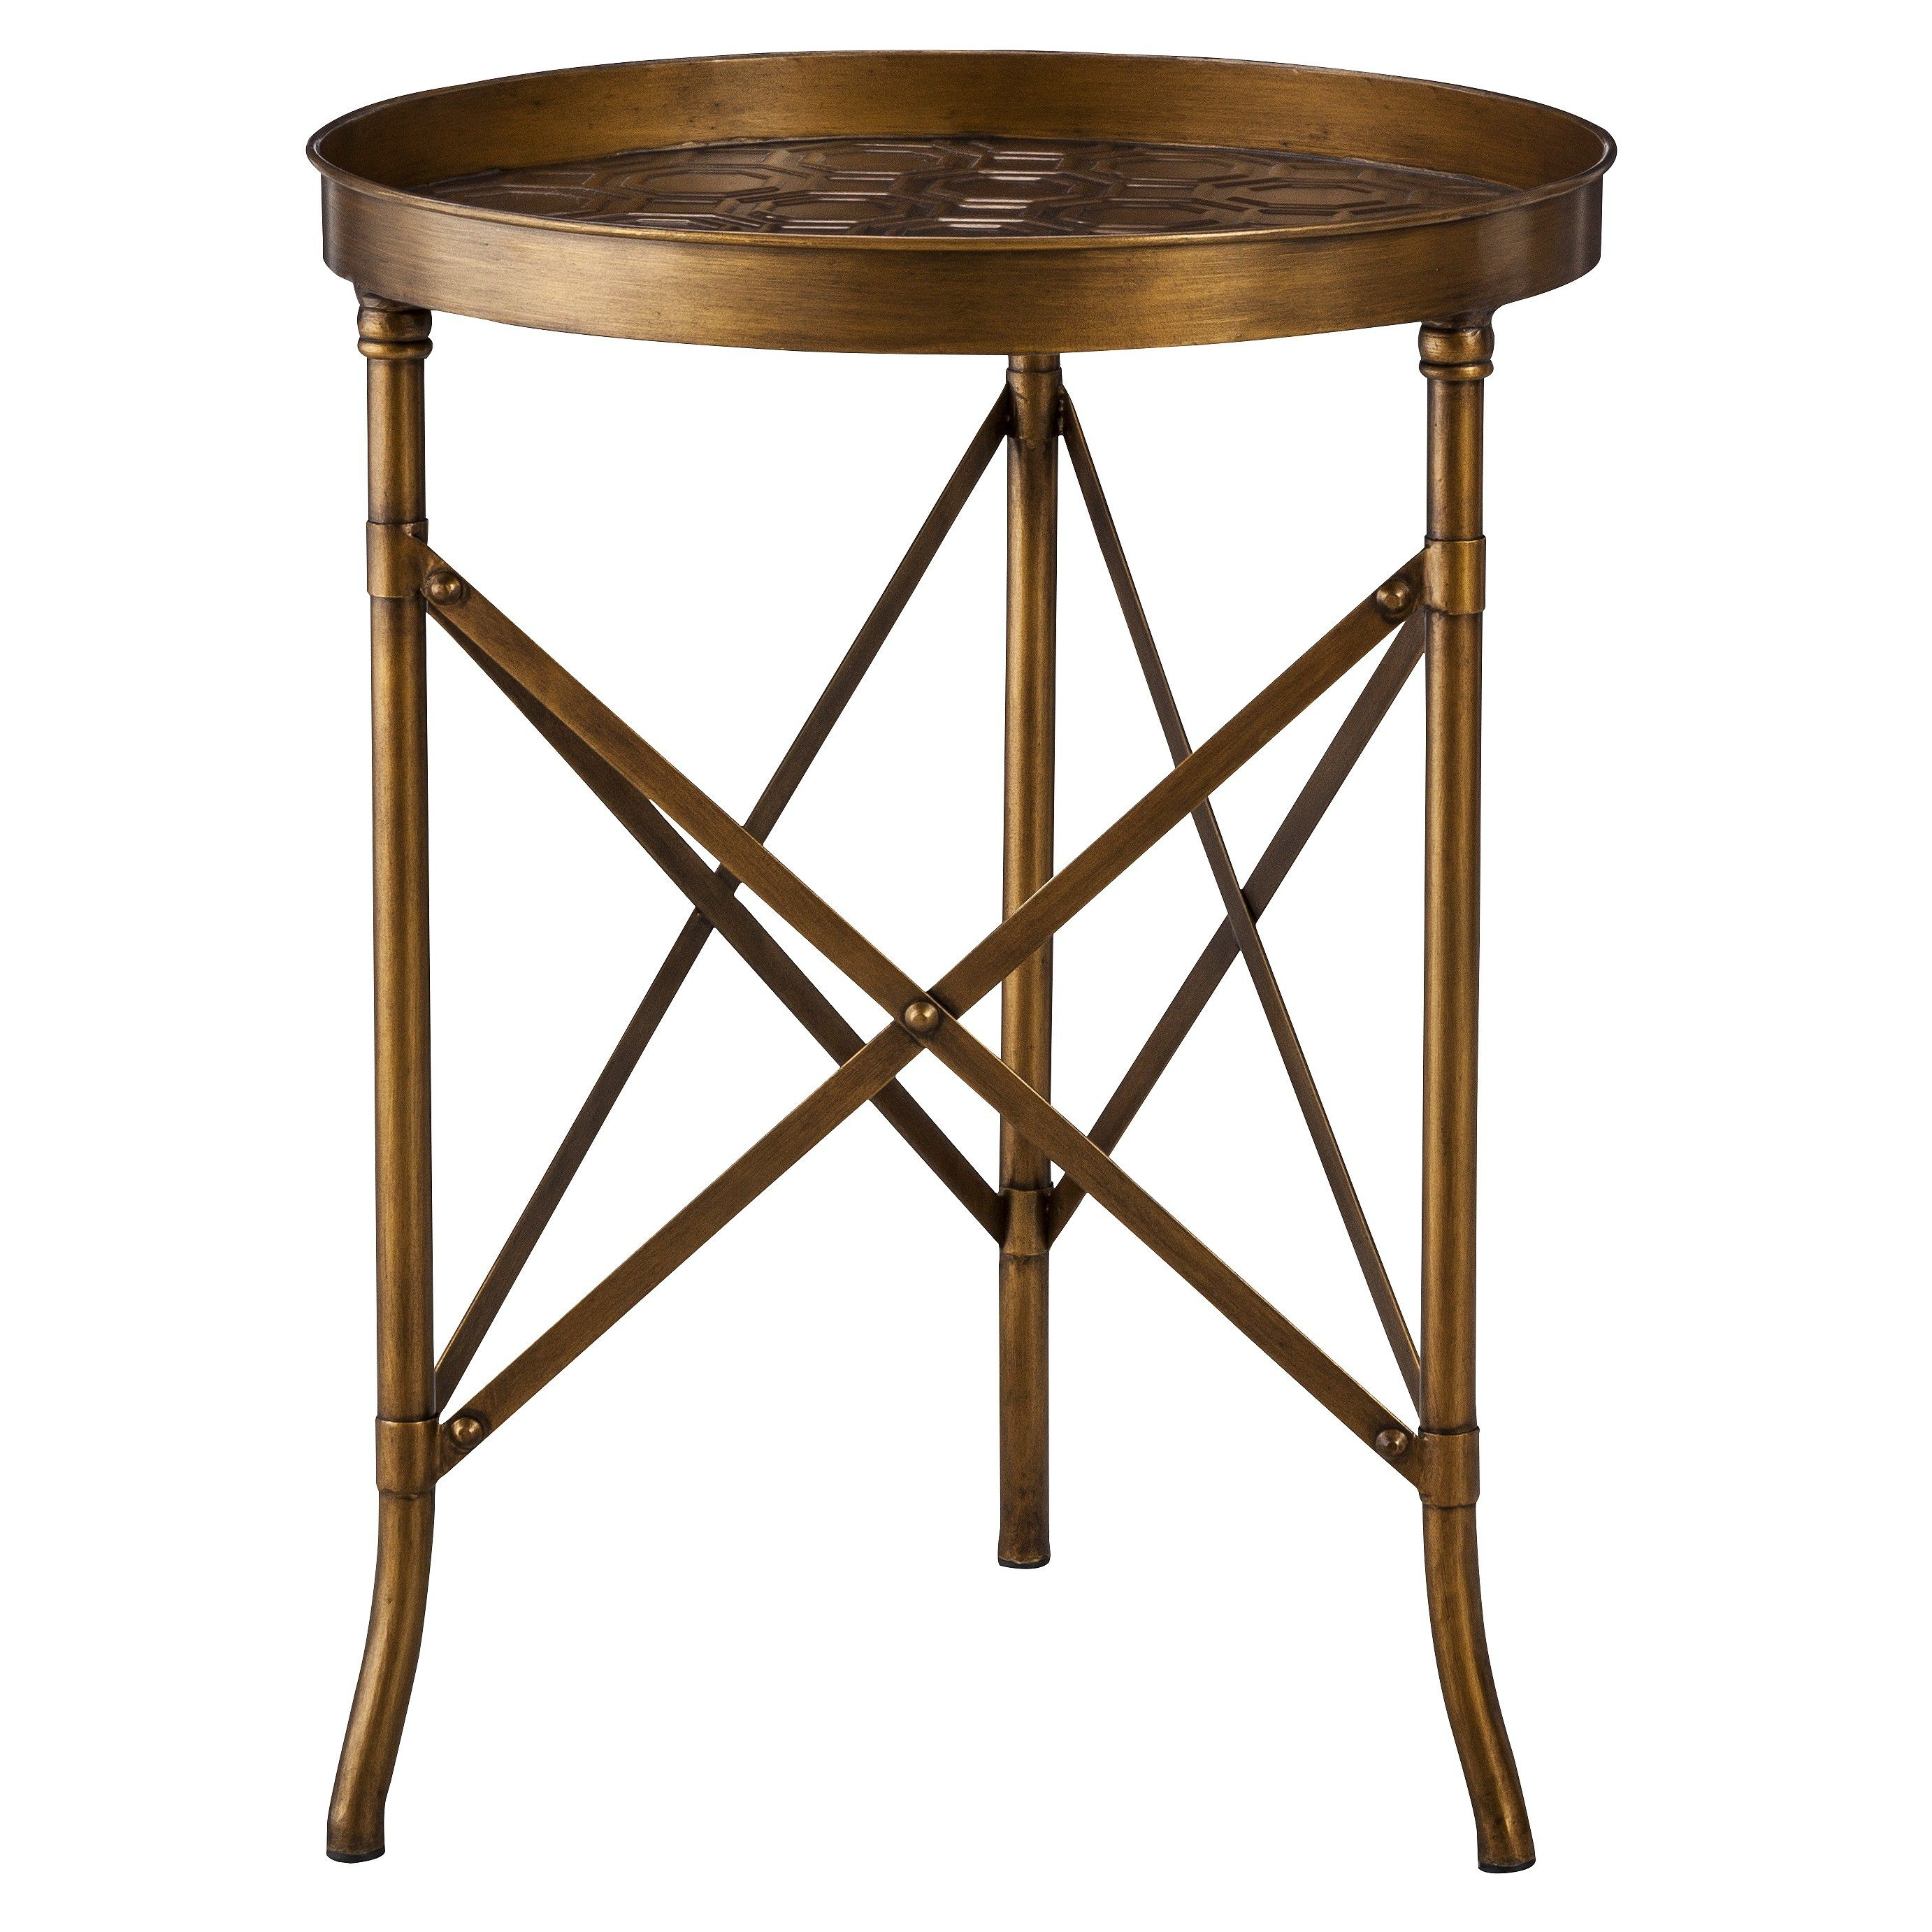 threshold stamped metal accent table gold target nightstand thin wine rack whole wedding linens round coffee extra wide sofa bunnings outdoor pieces for bedroom comfortable dining